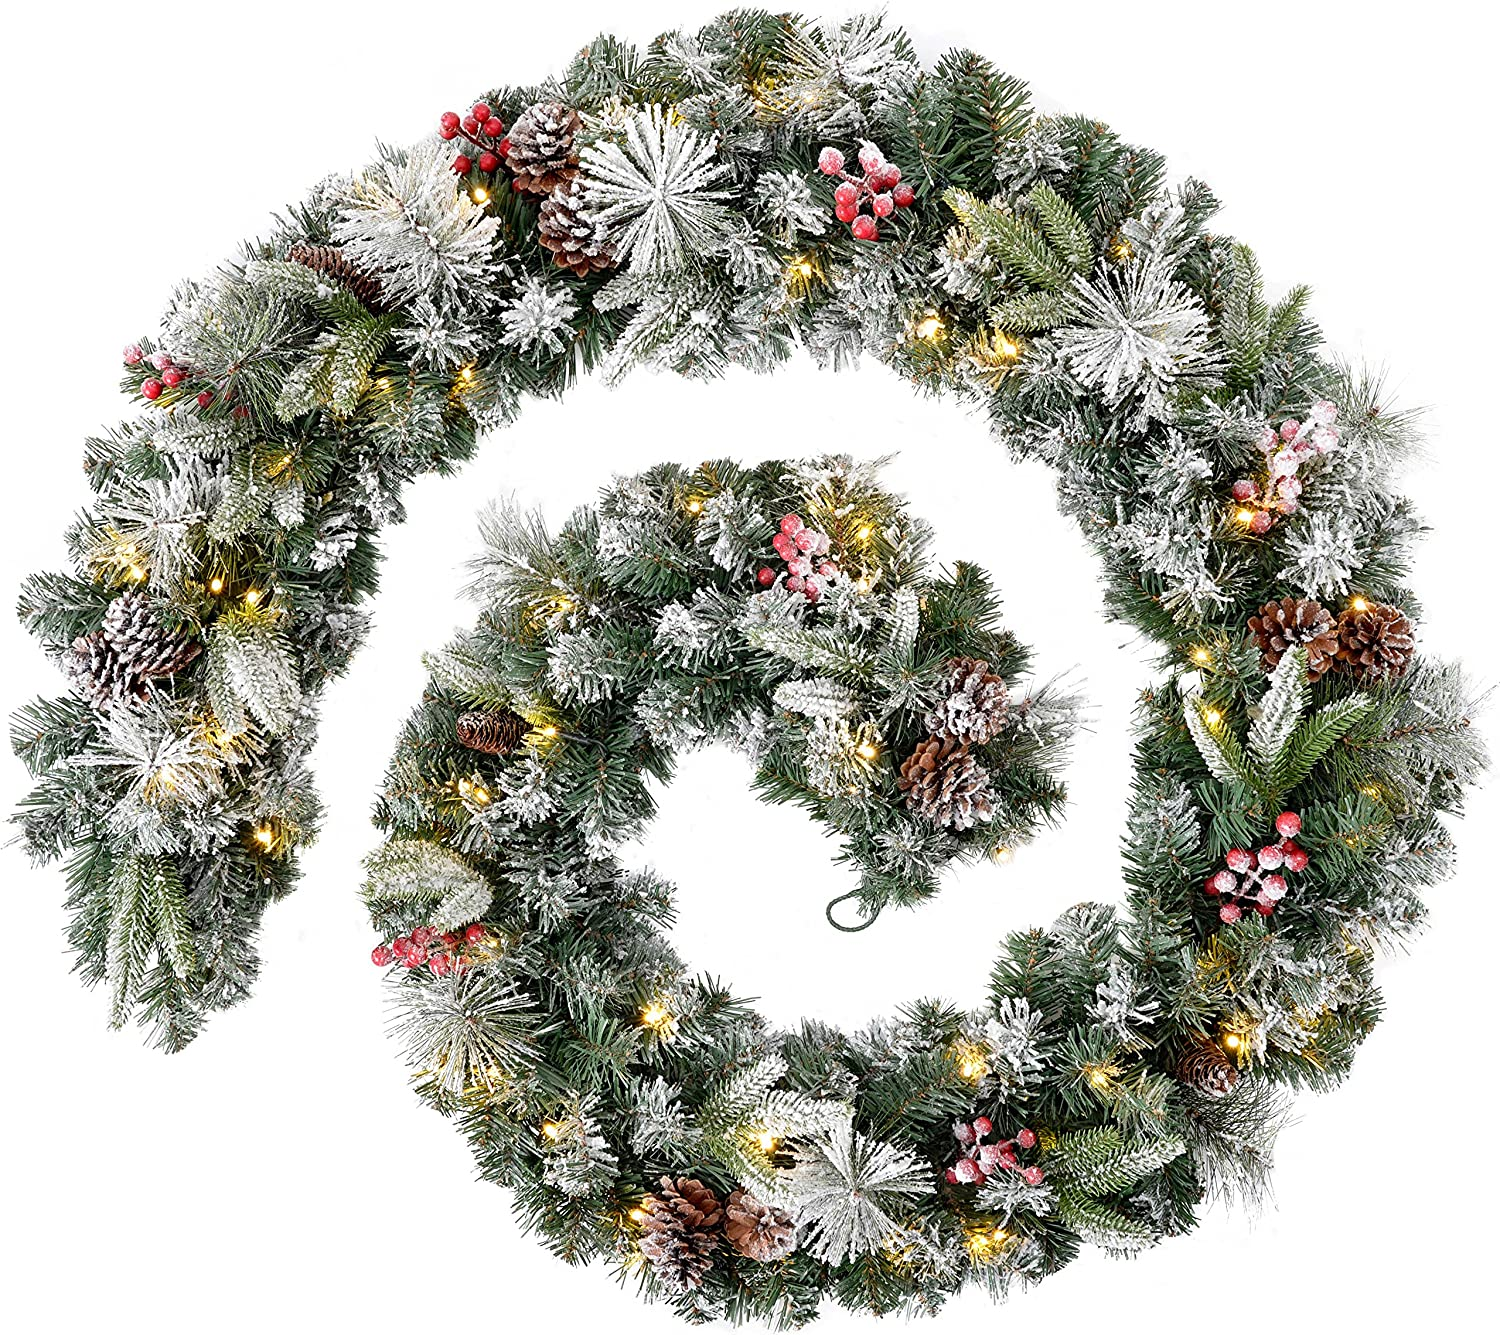 Snow Flocked WeRChristmas Extra Thick Pre-Lit Multi-Function Garland with 80 Warm LED Lights 9 feet